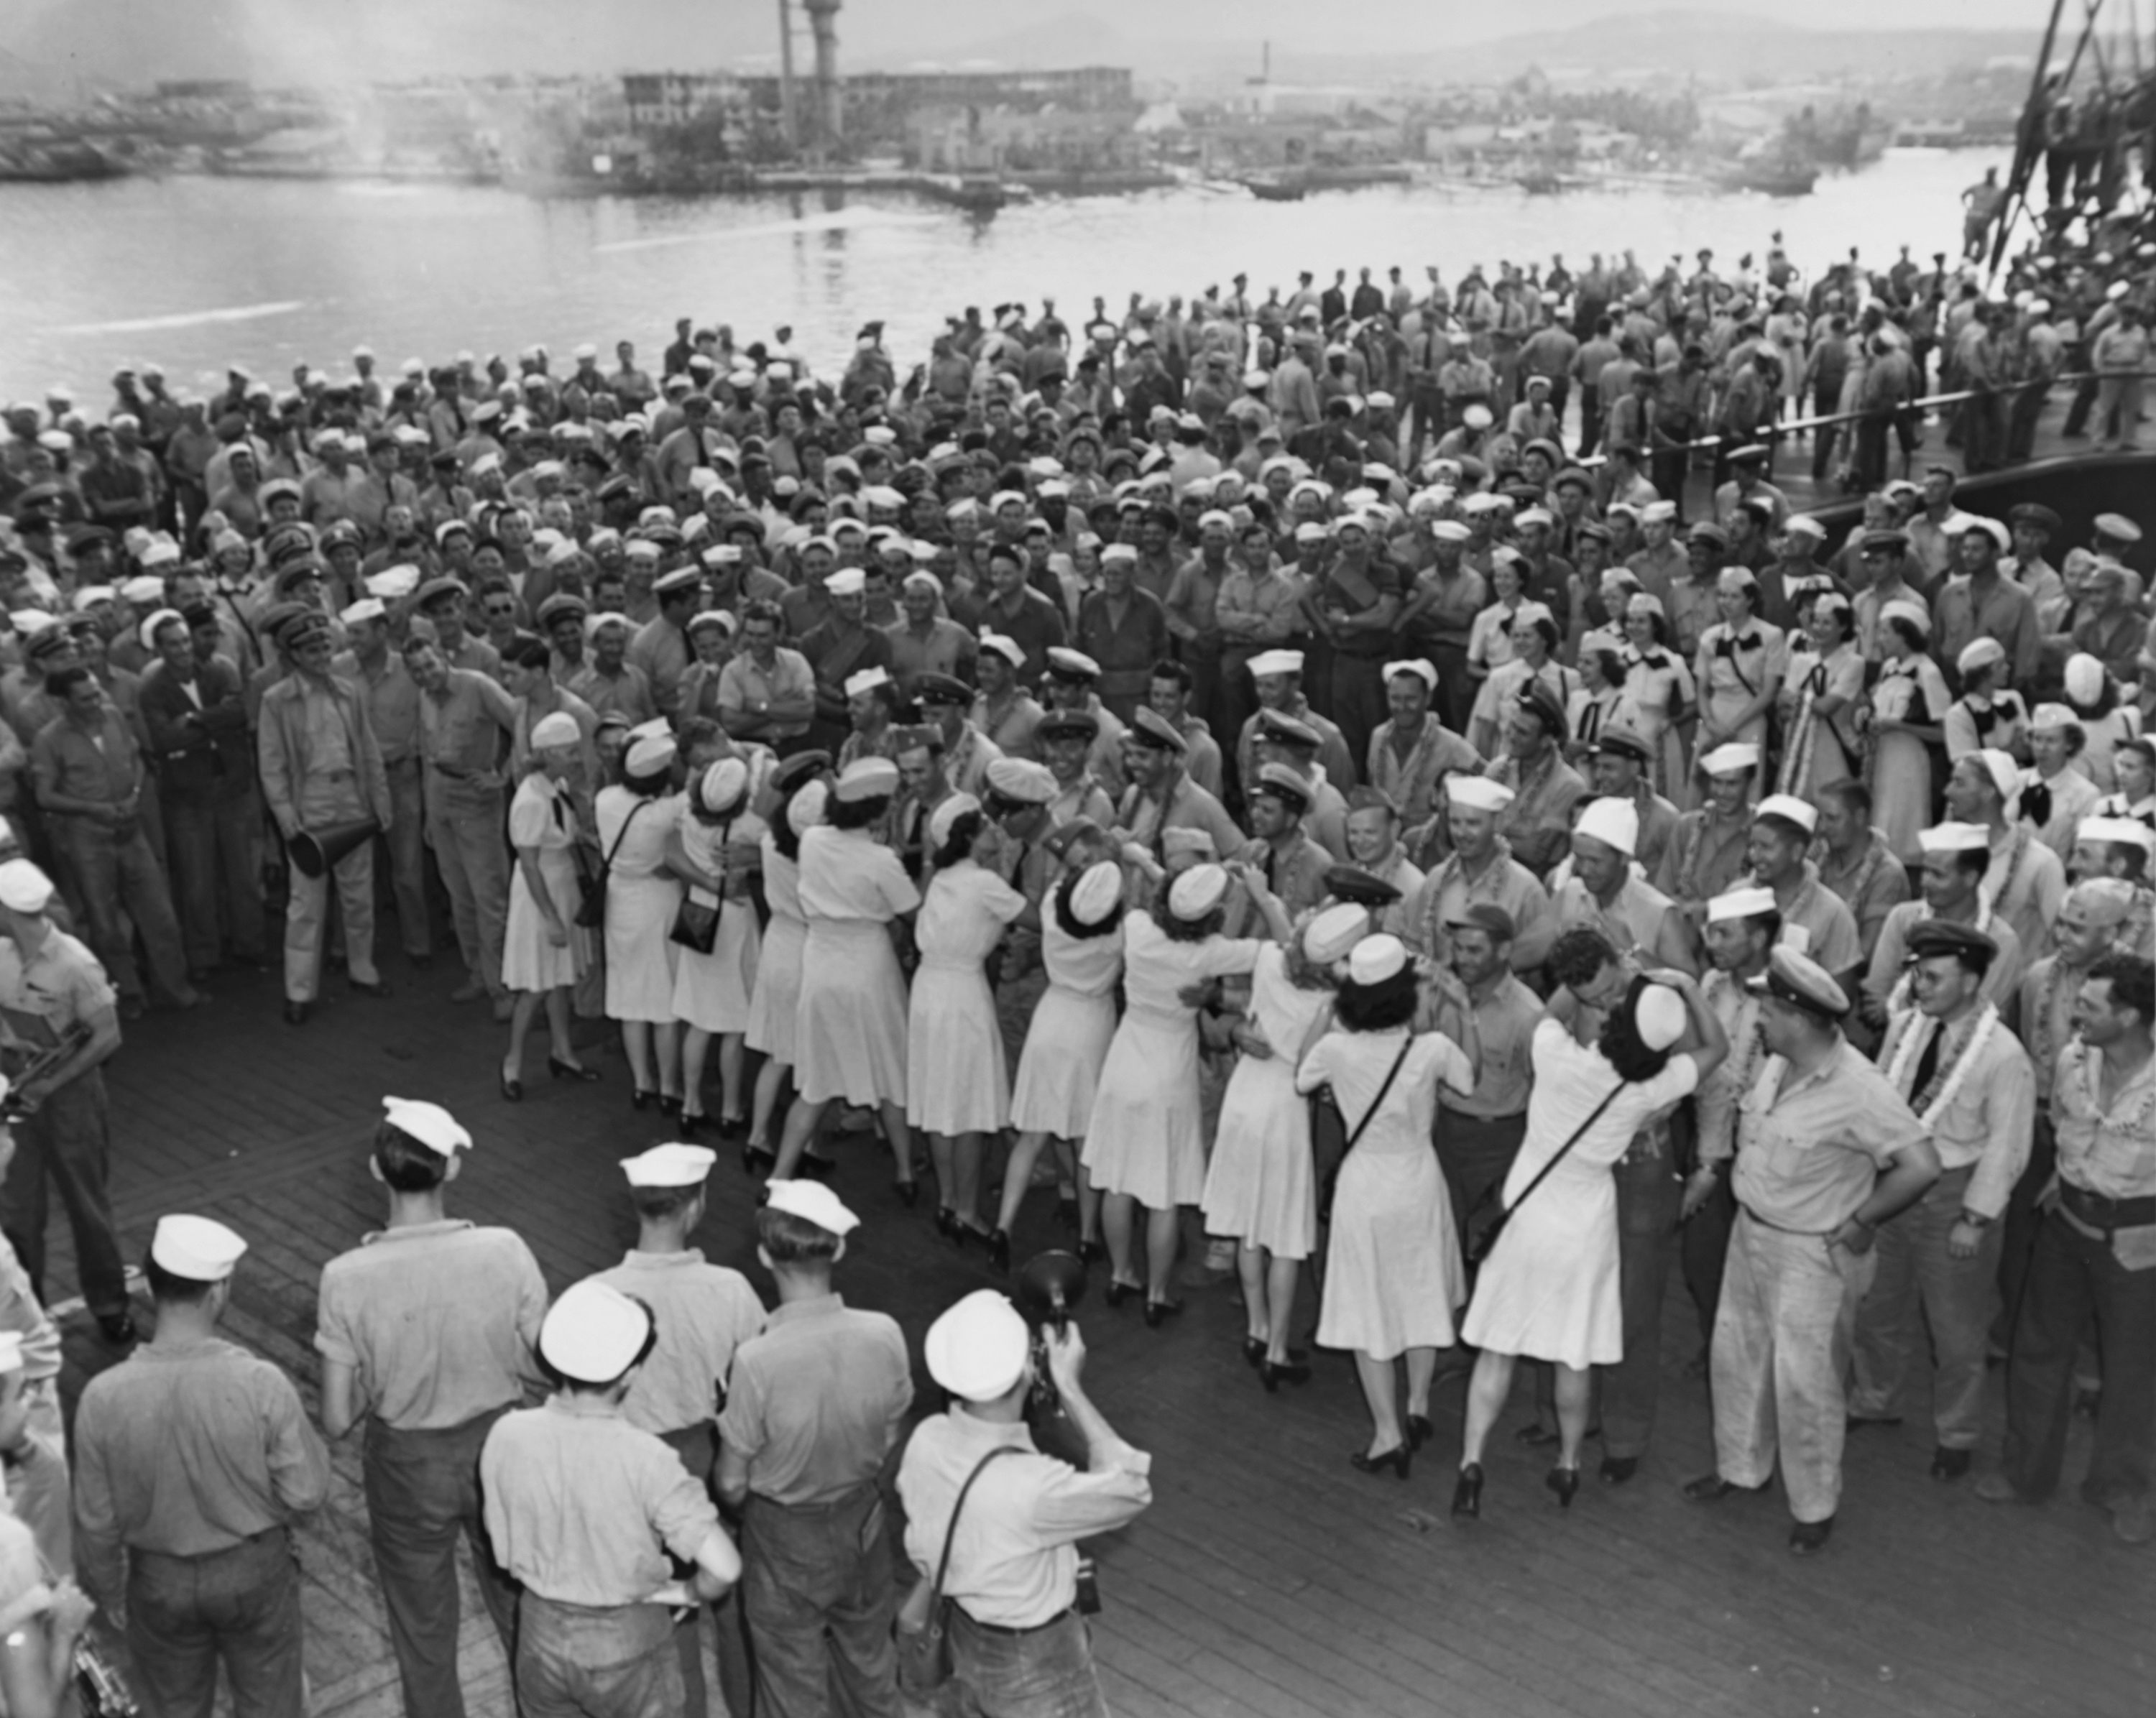 Sailors Get Hawaiian-Style Send-Off on USS Saratoga